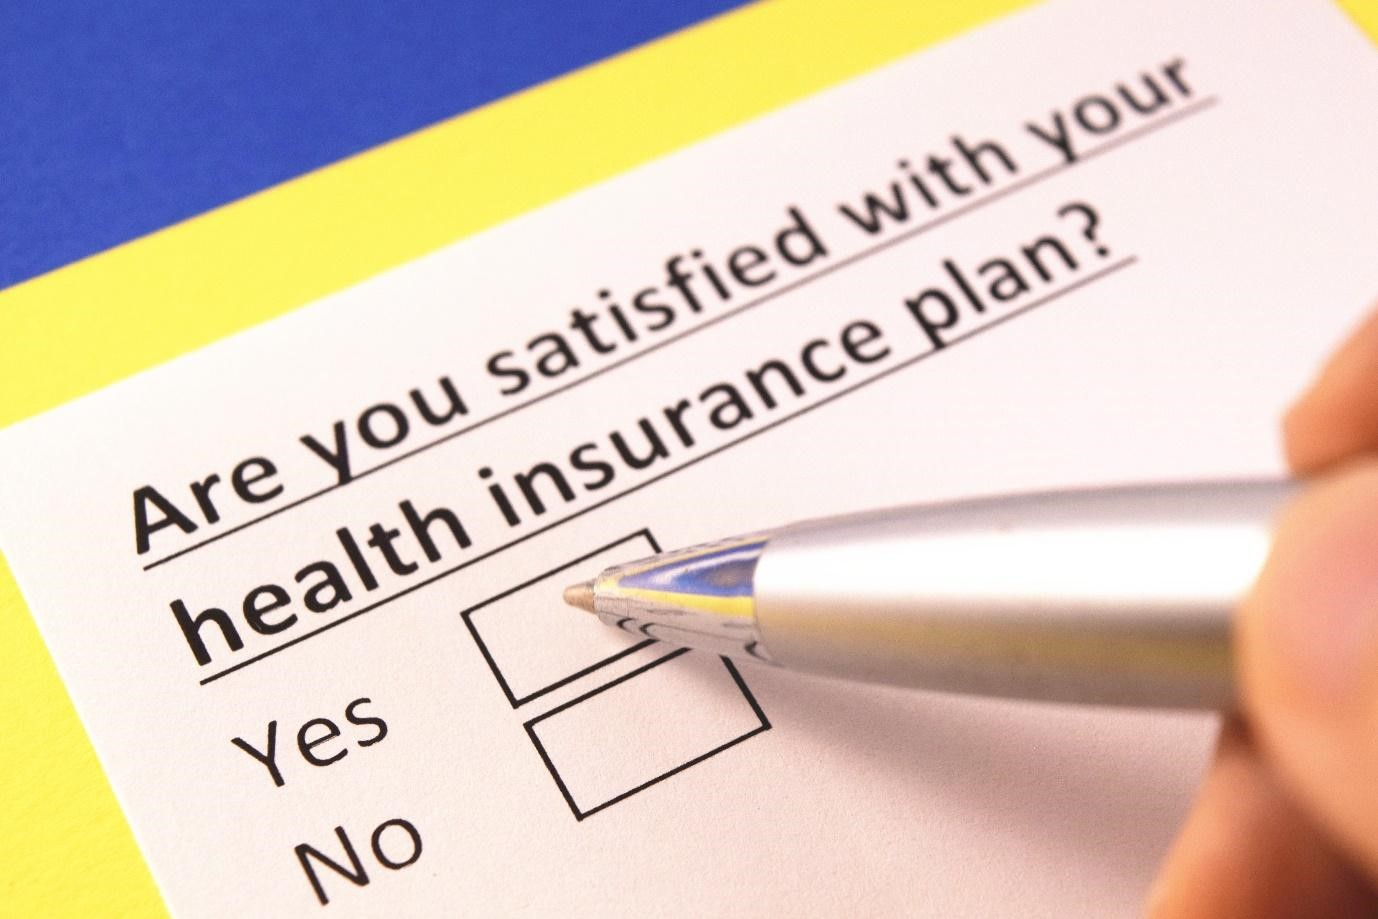 5 Crucial Things To Consider While Choosing An Insurer